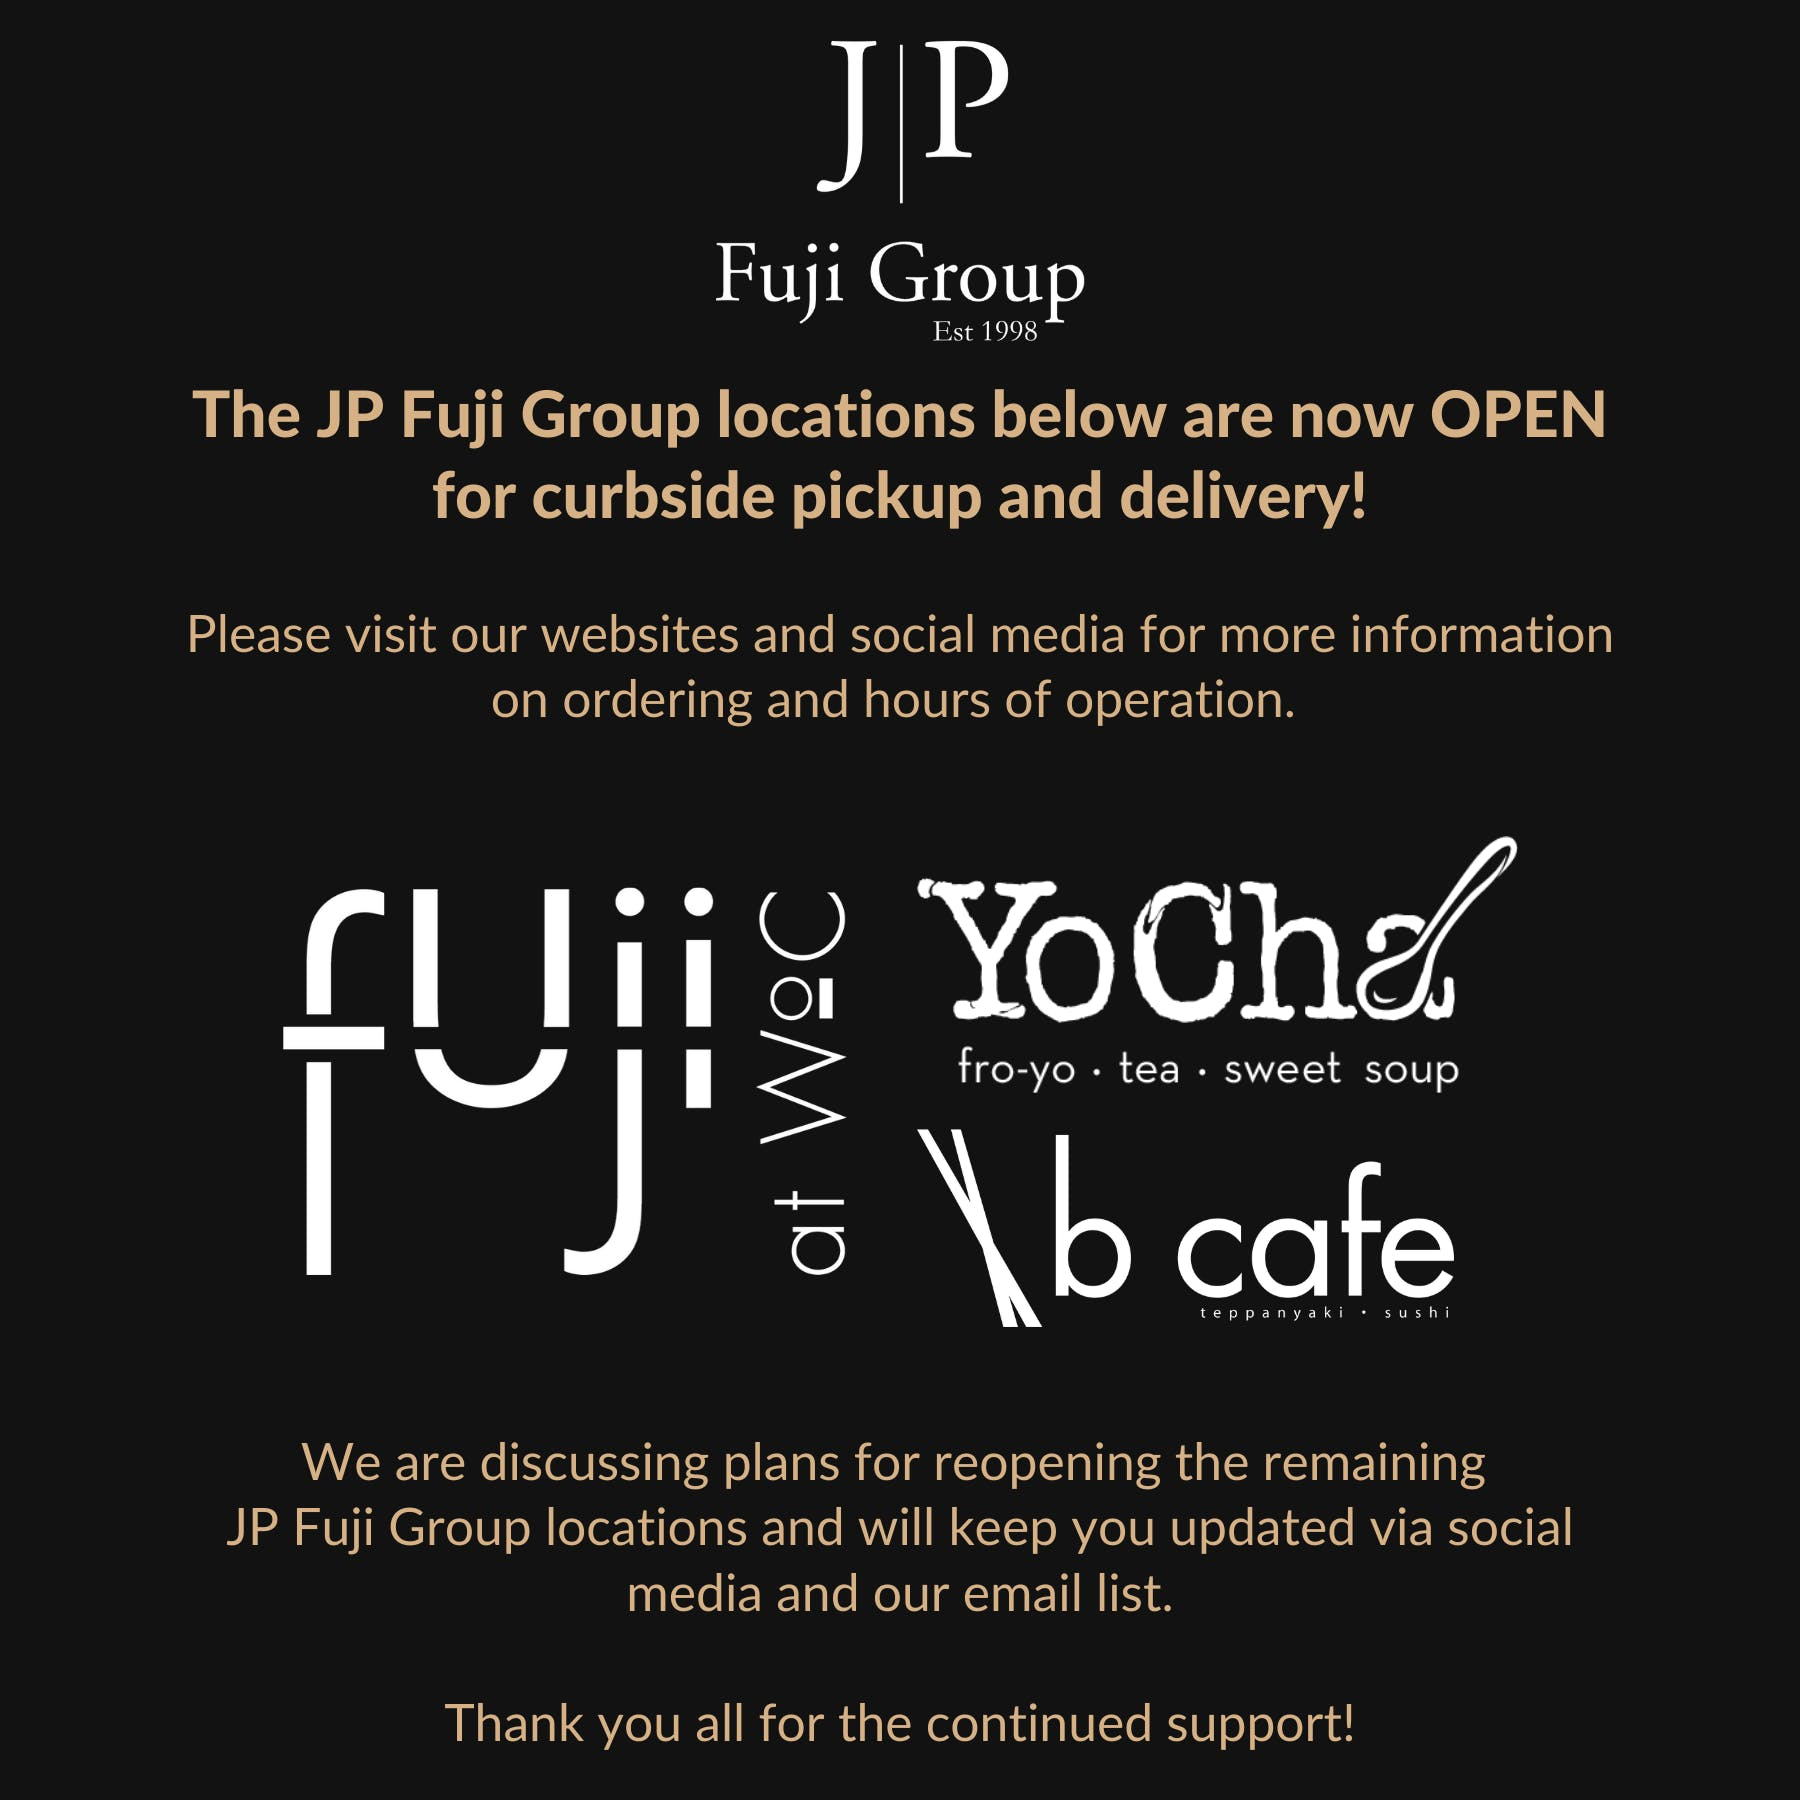 Fuji at Woc, B Cafe, and YoCha are now OPEN for curbside pickup and delivery!